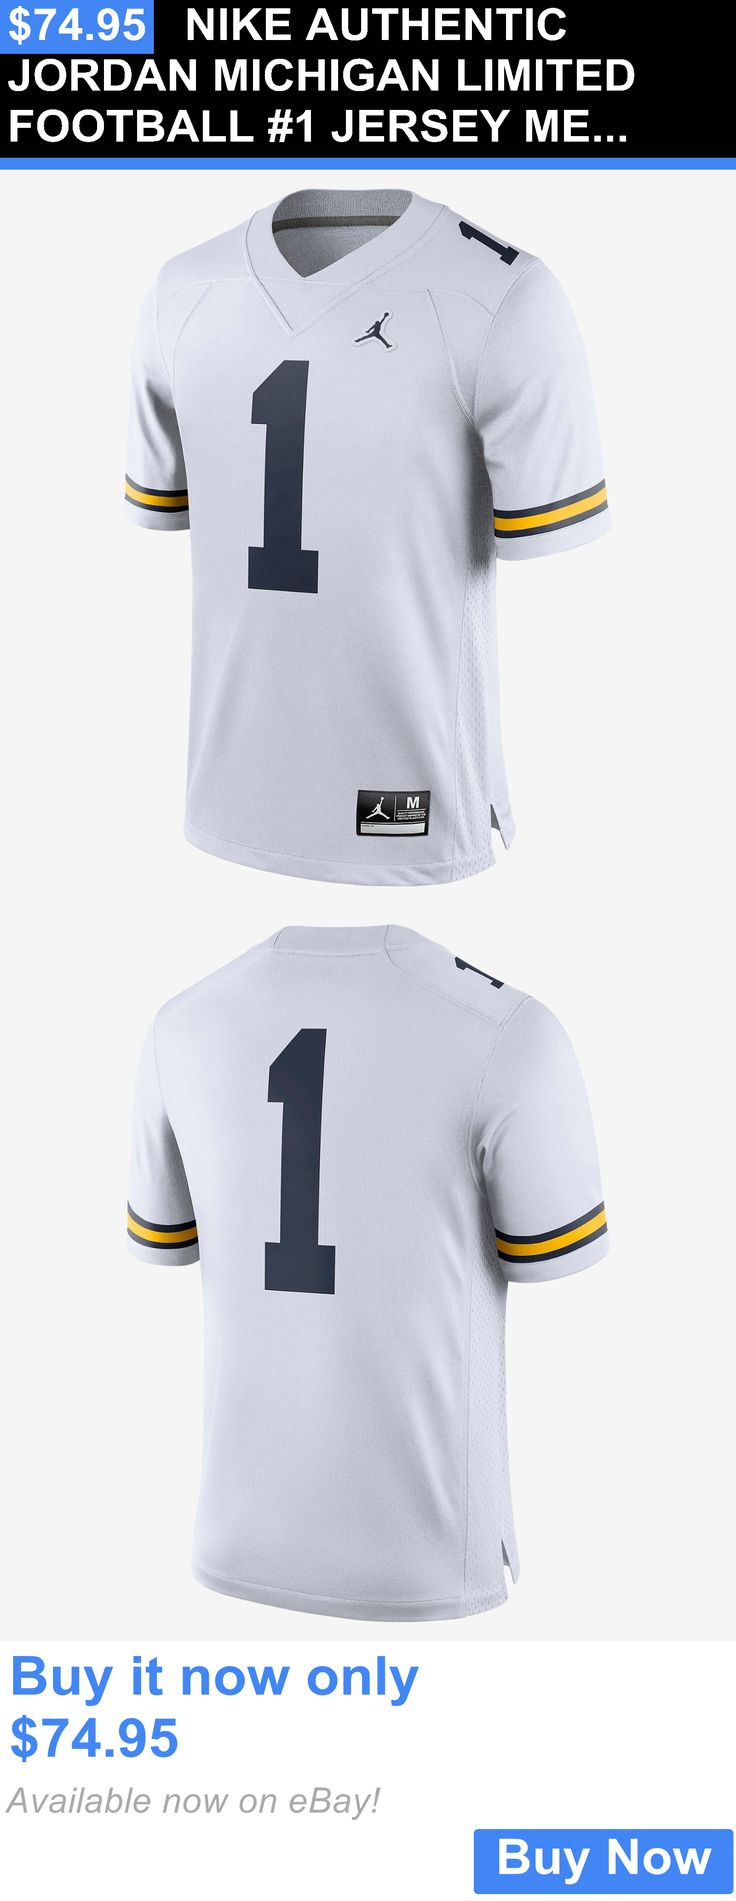 Sports Memorabilia: Nike Authentic Jordan Michigan Limited Football #1 Jersey Mens Size Xl BUY IT NOW ONLY: $74.95